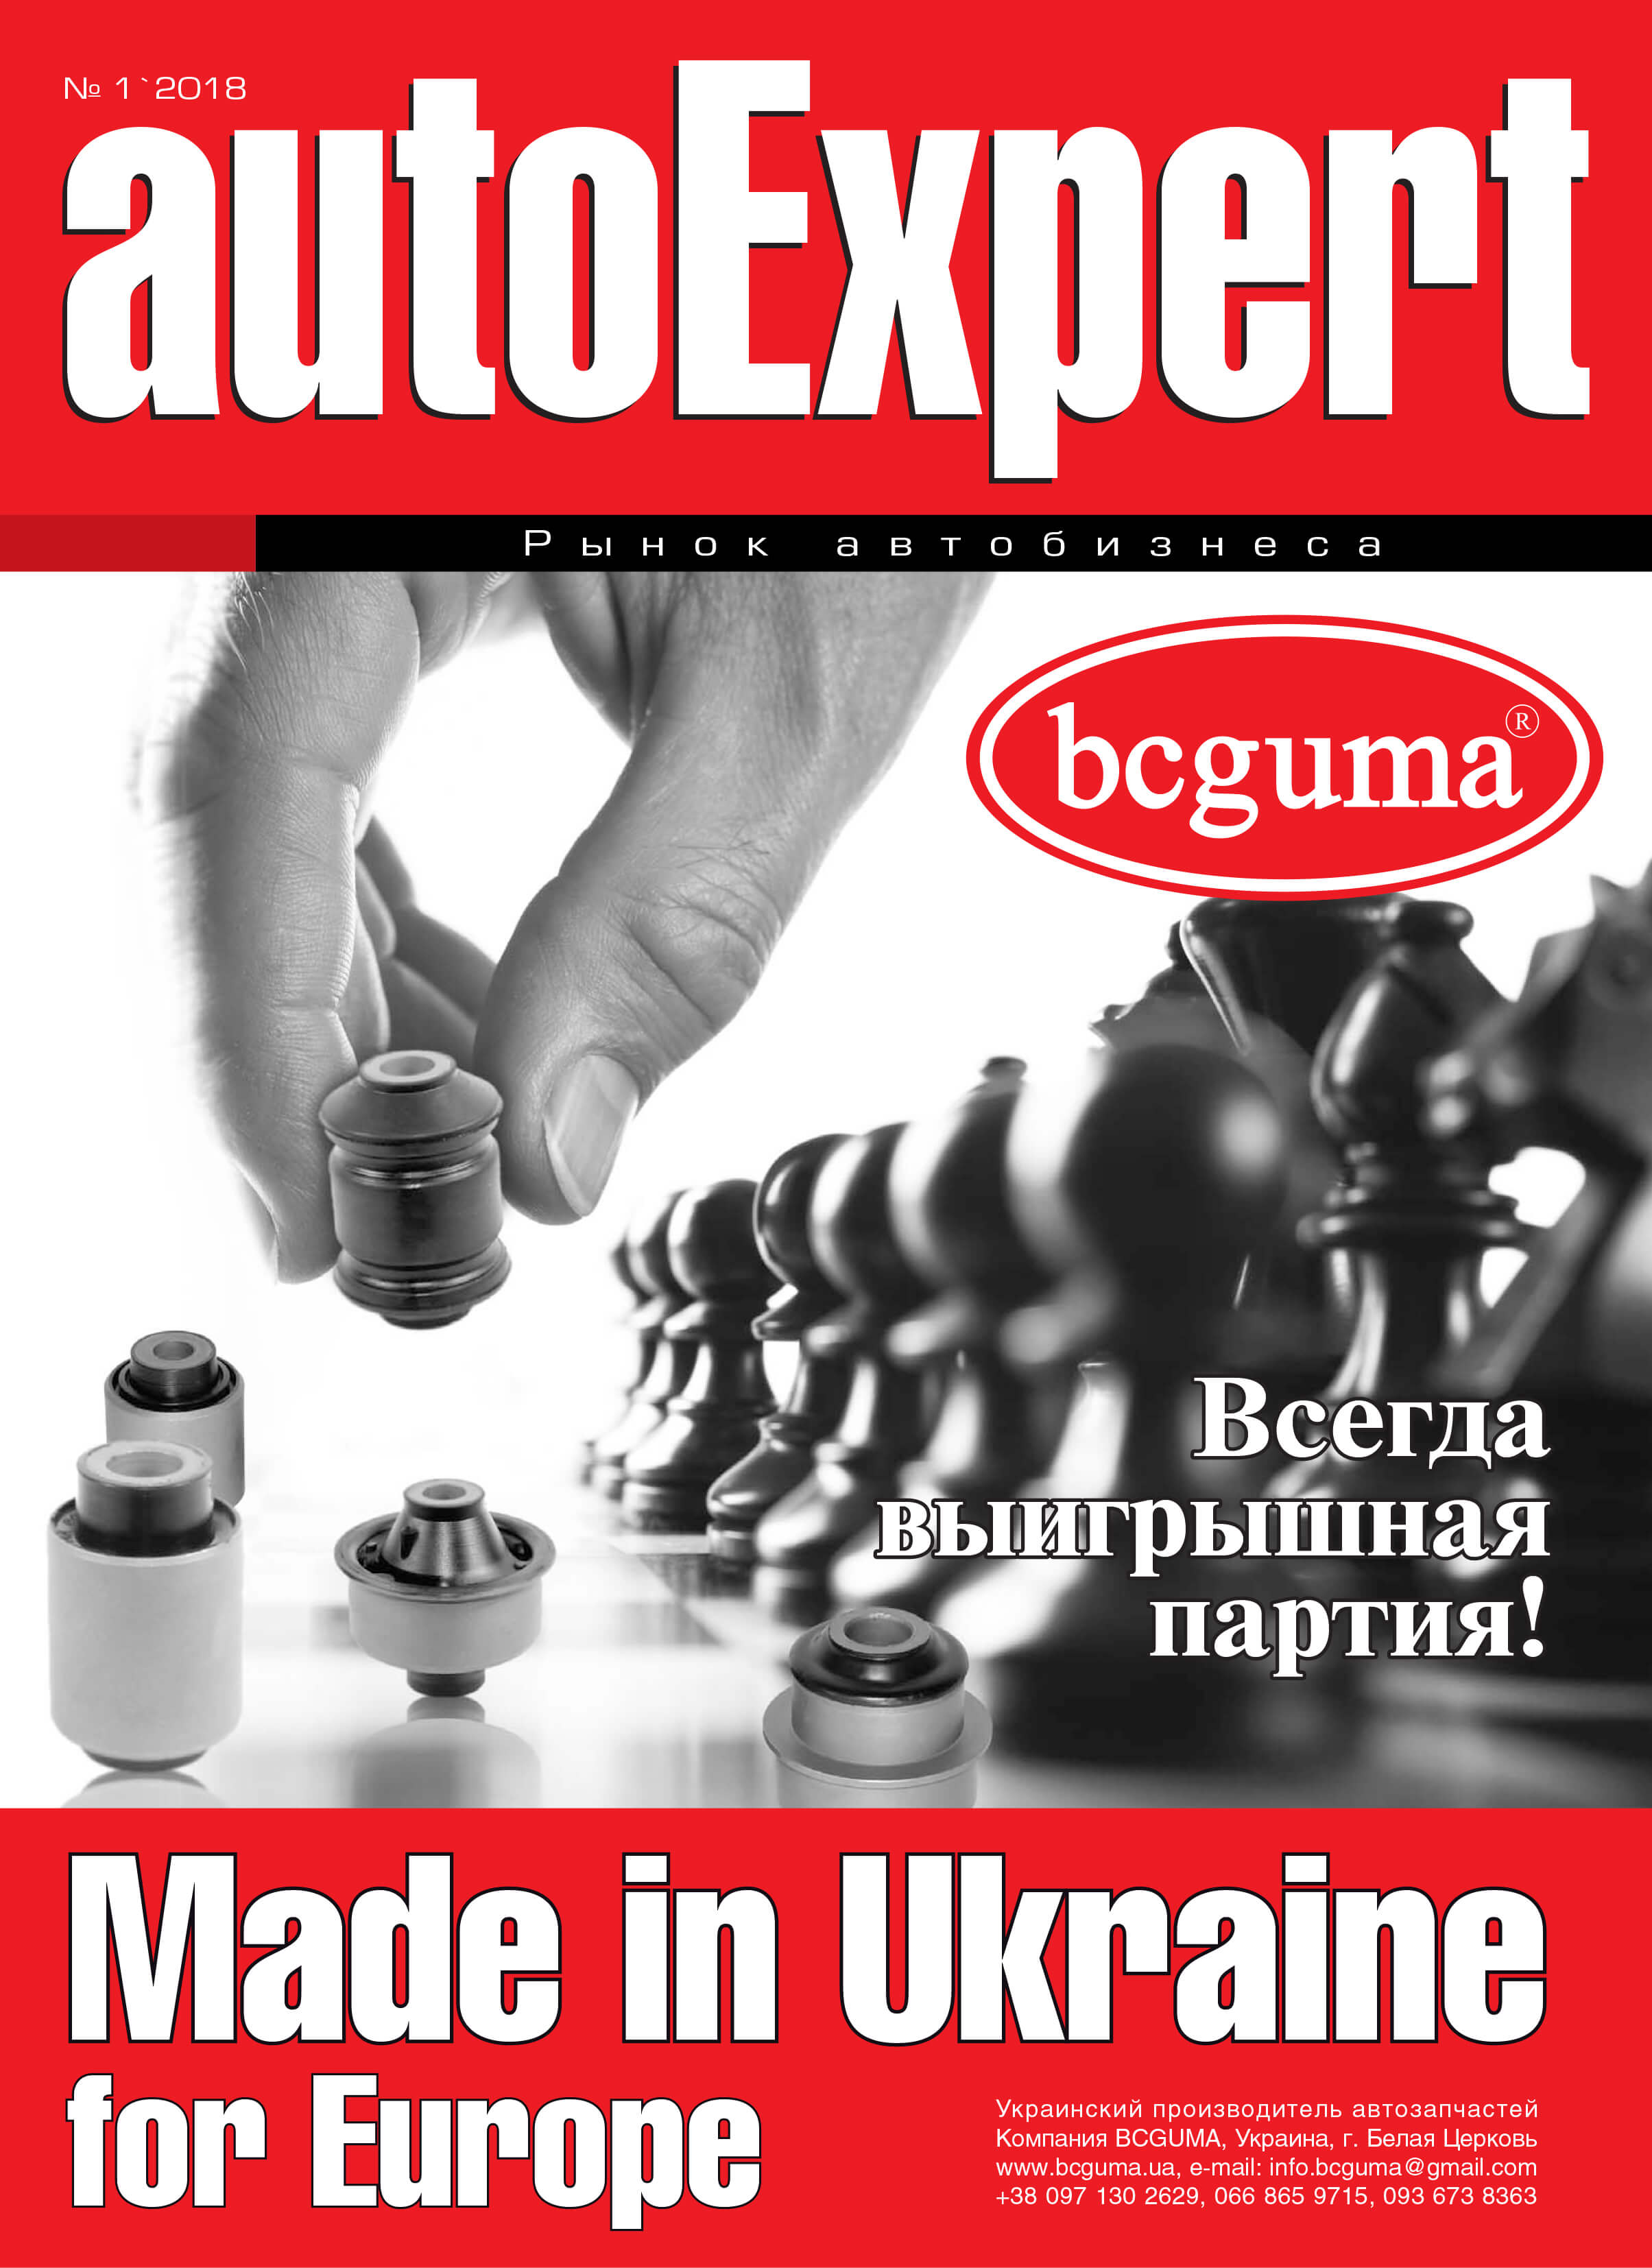 Autoexpert magazine attended the production of BCGUMA